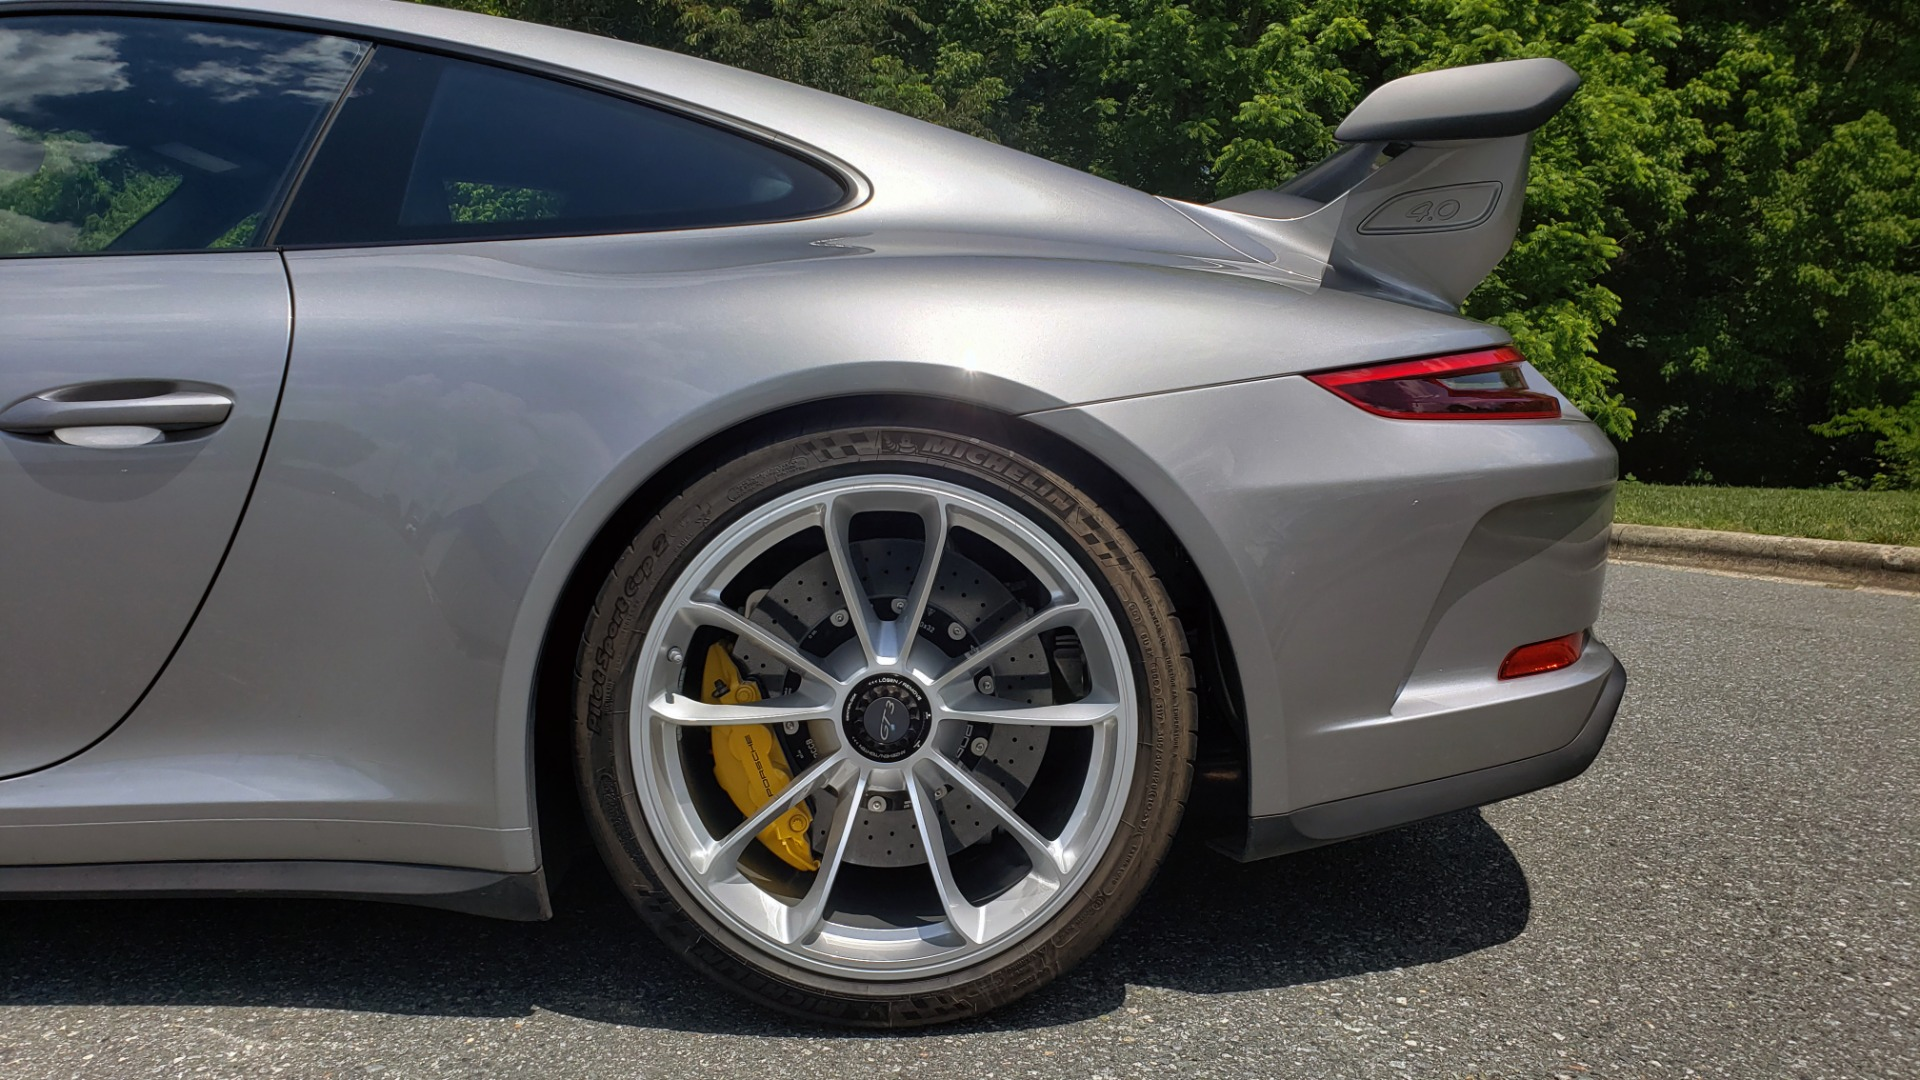 Used 2018 Porsche 911 GT3 4.0L 500HP / 6-SPD MNL / NAV / REARVIEW / PCCB for sale Sold at Formula Imports in Charlotte NC 28227 70